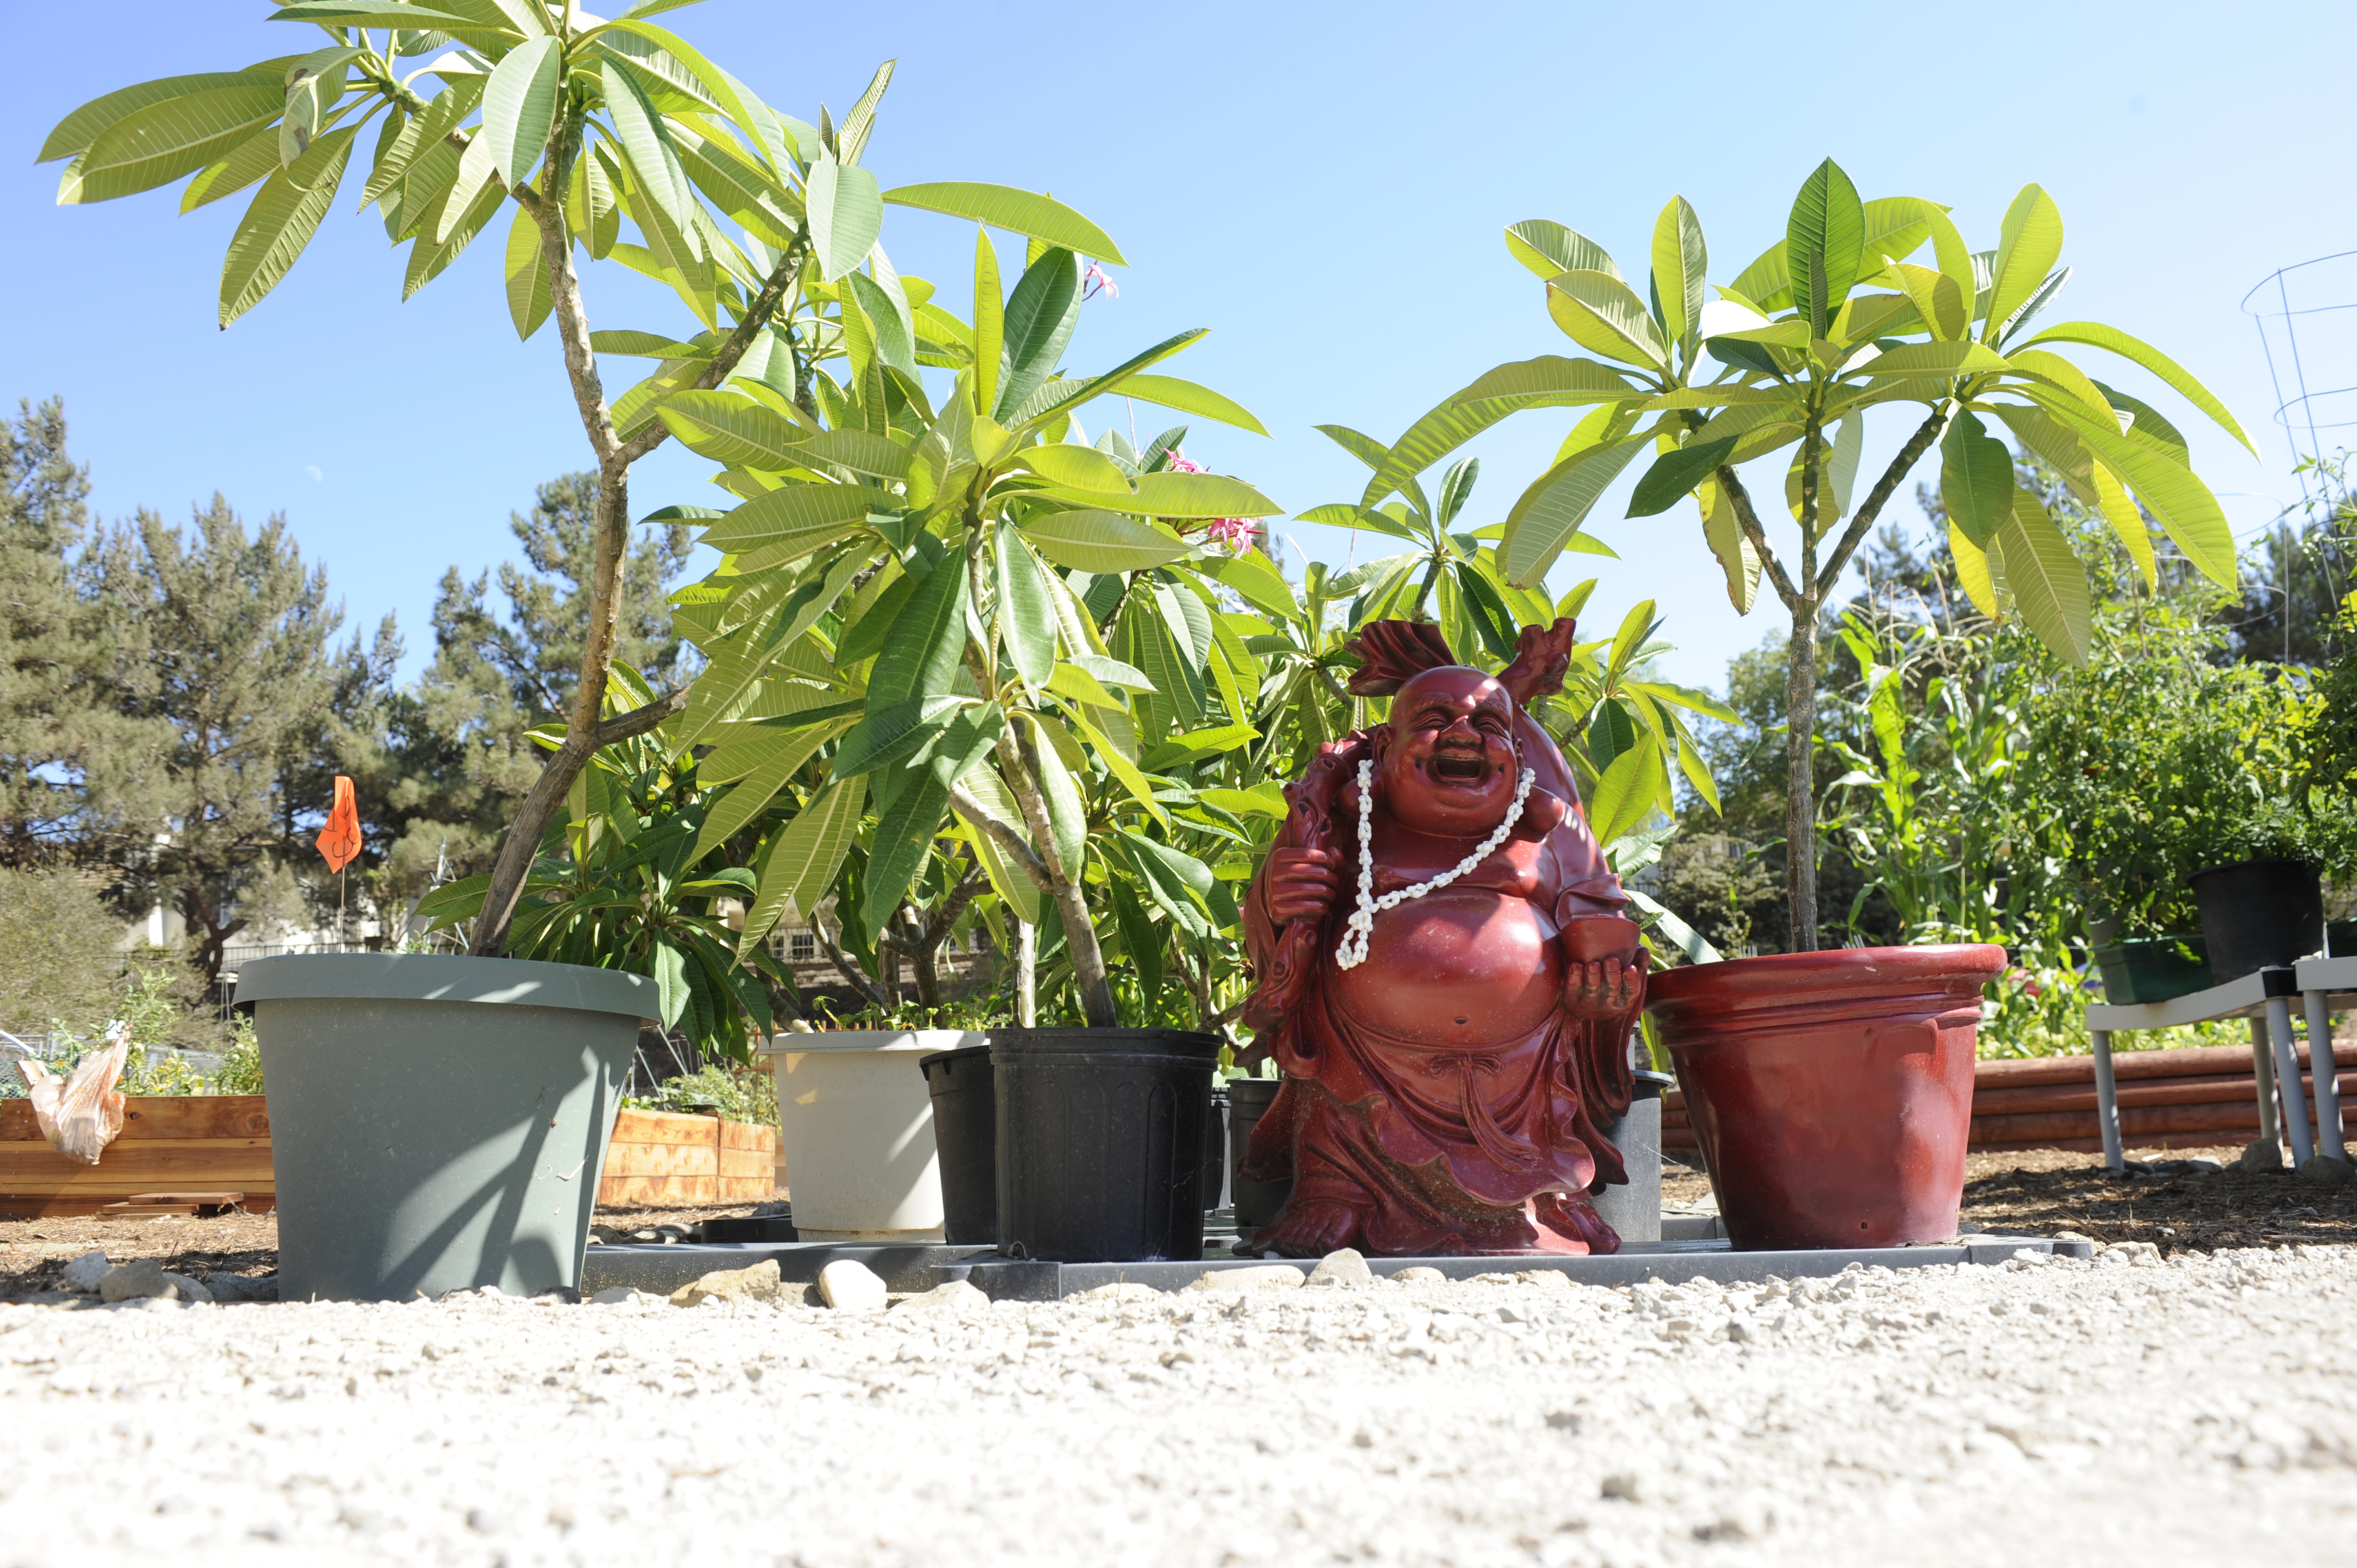 Small red buda sitting next to some plants waiting to be placed in a garden plot